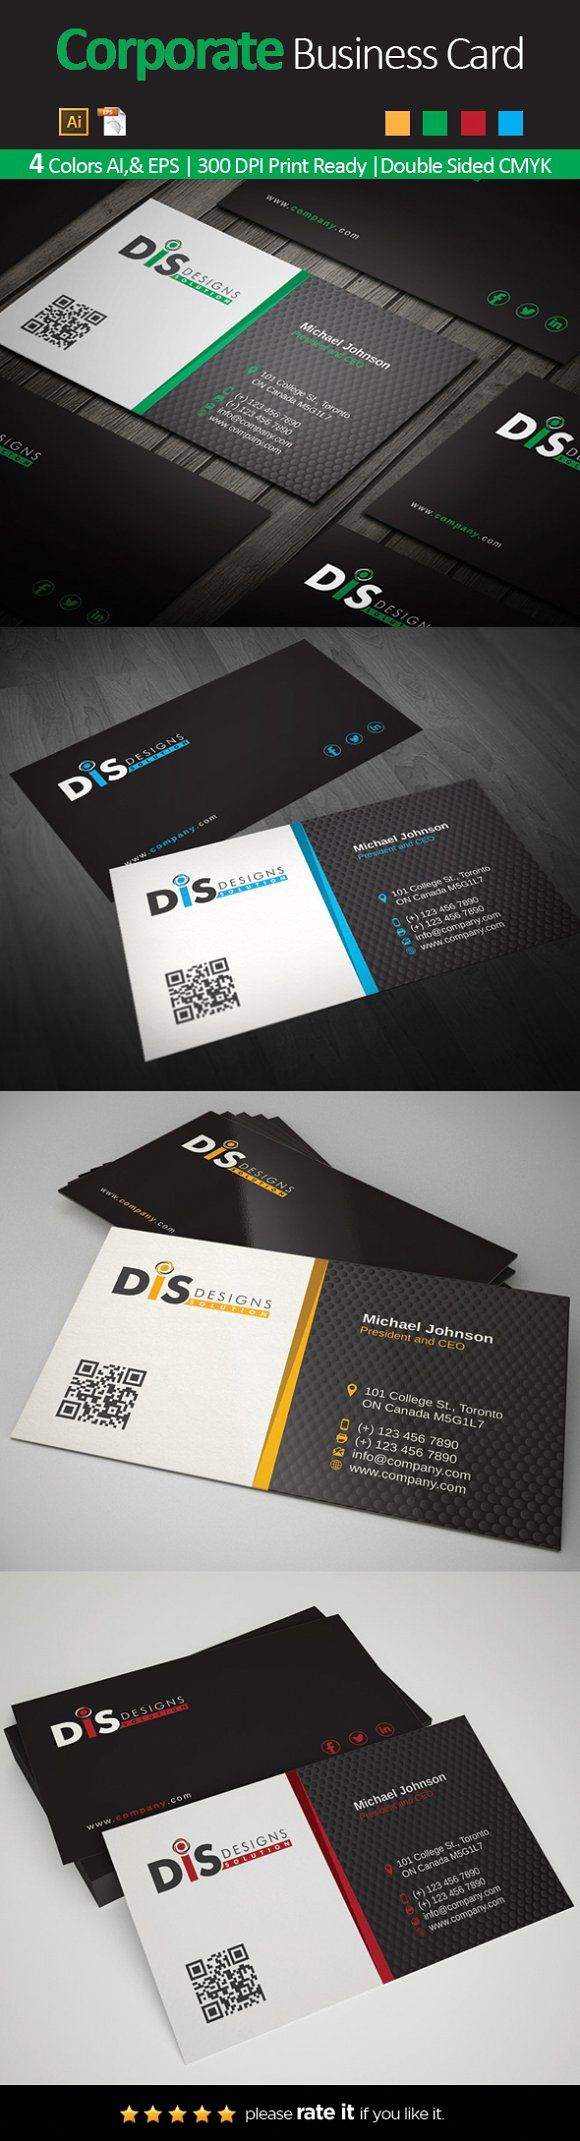 Business Card 35 | Pinterest | Business cards and Card templates